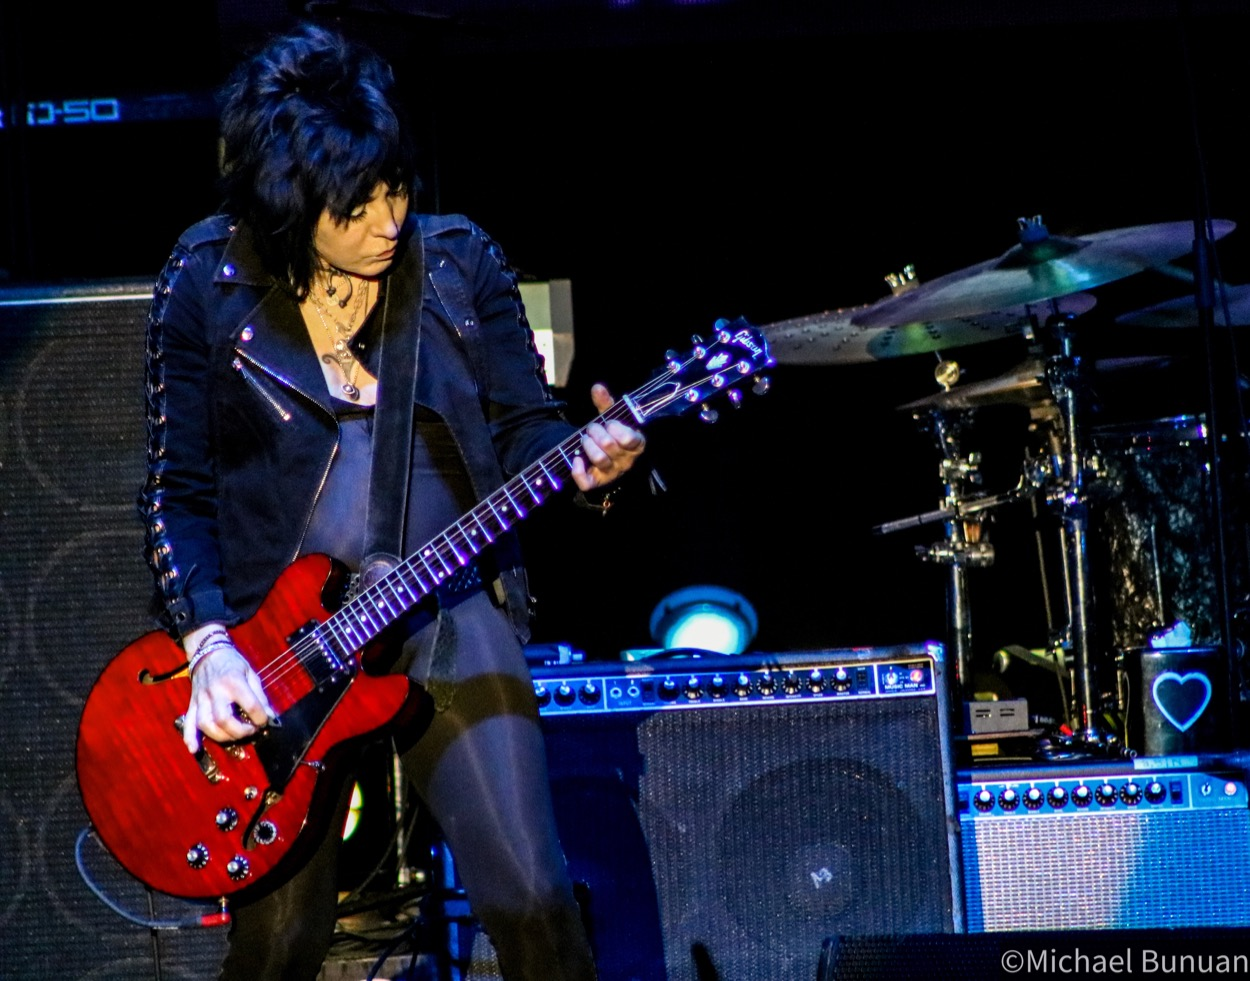 Joan Jett and the Blackhearts @ FivePoint Amphitheatre 10/26/19. Photo by Michael Bunuan. (@Michael_Bunuan_Photogrpahy) for www.BlurredCulture.com.